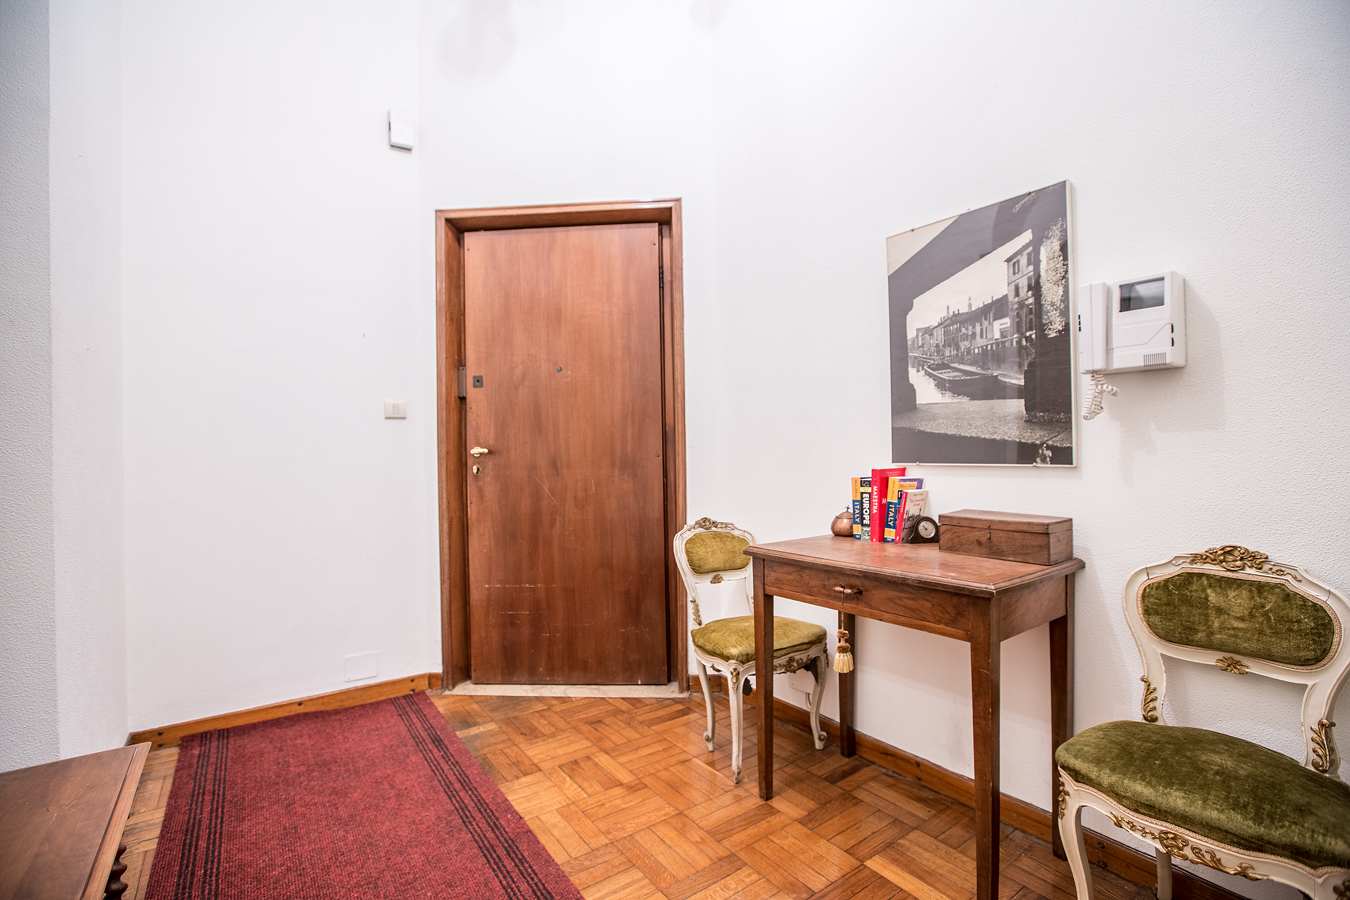 Student Apartment for rent in Via Franchino Gaffurio, 2, 3° floor, in Milano, Italy